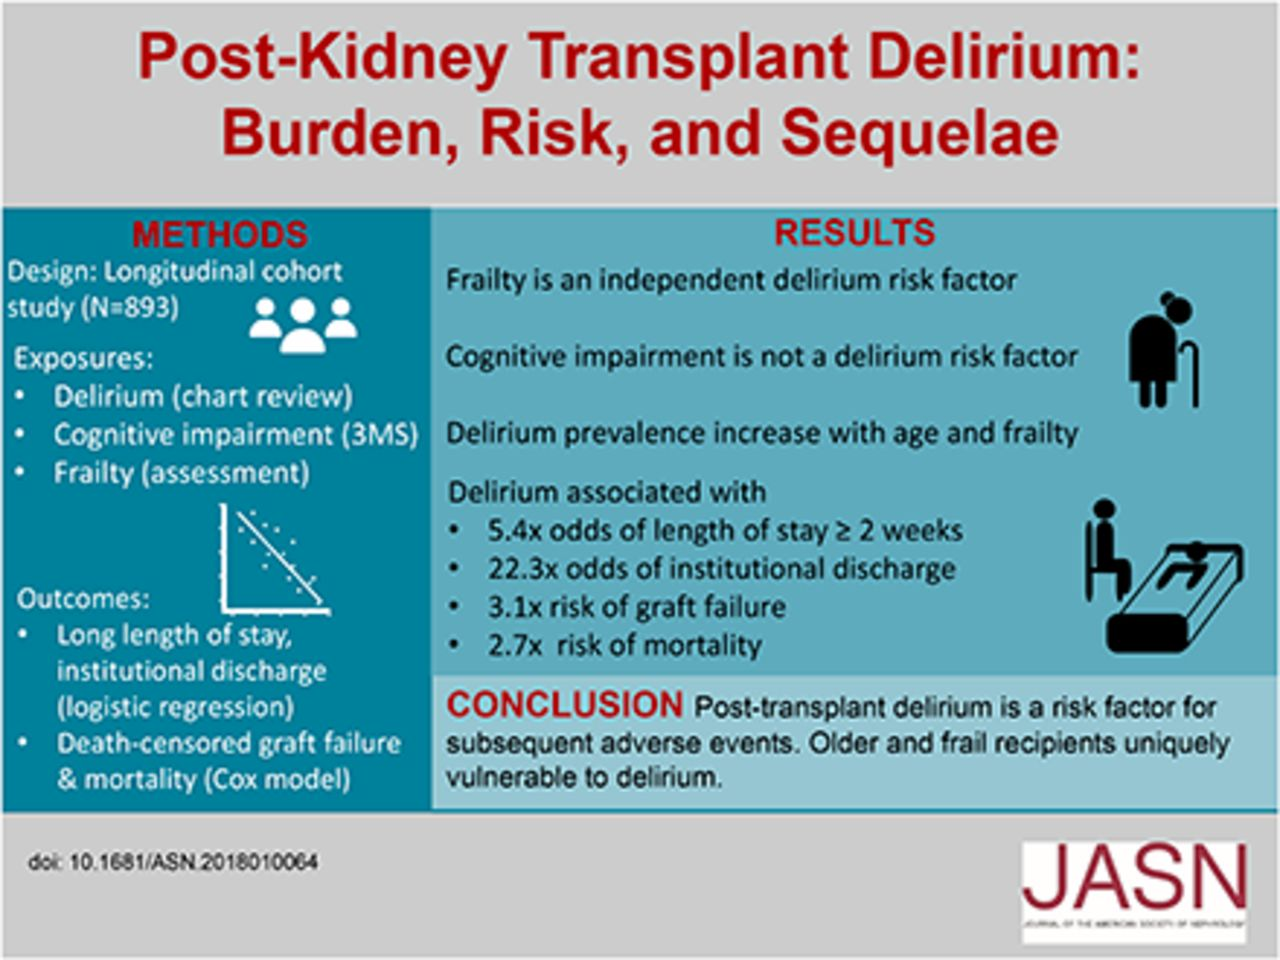 Incidence, Risk Factors, and Sequelae of Post-kidney